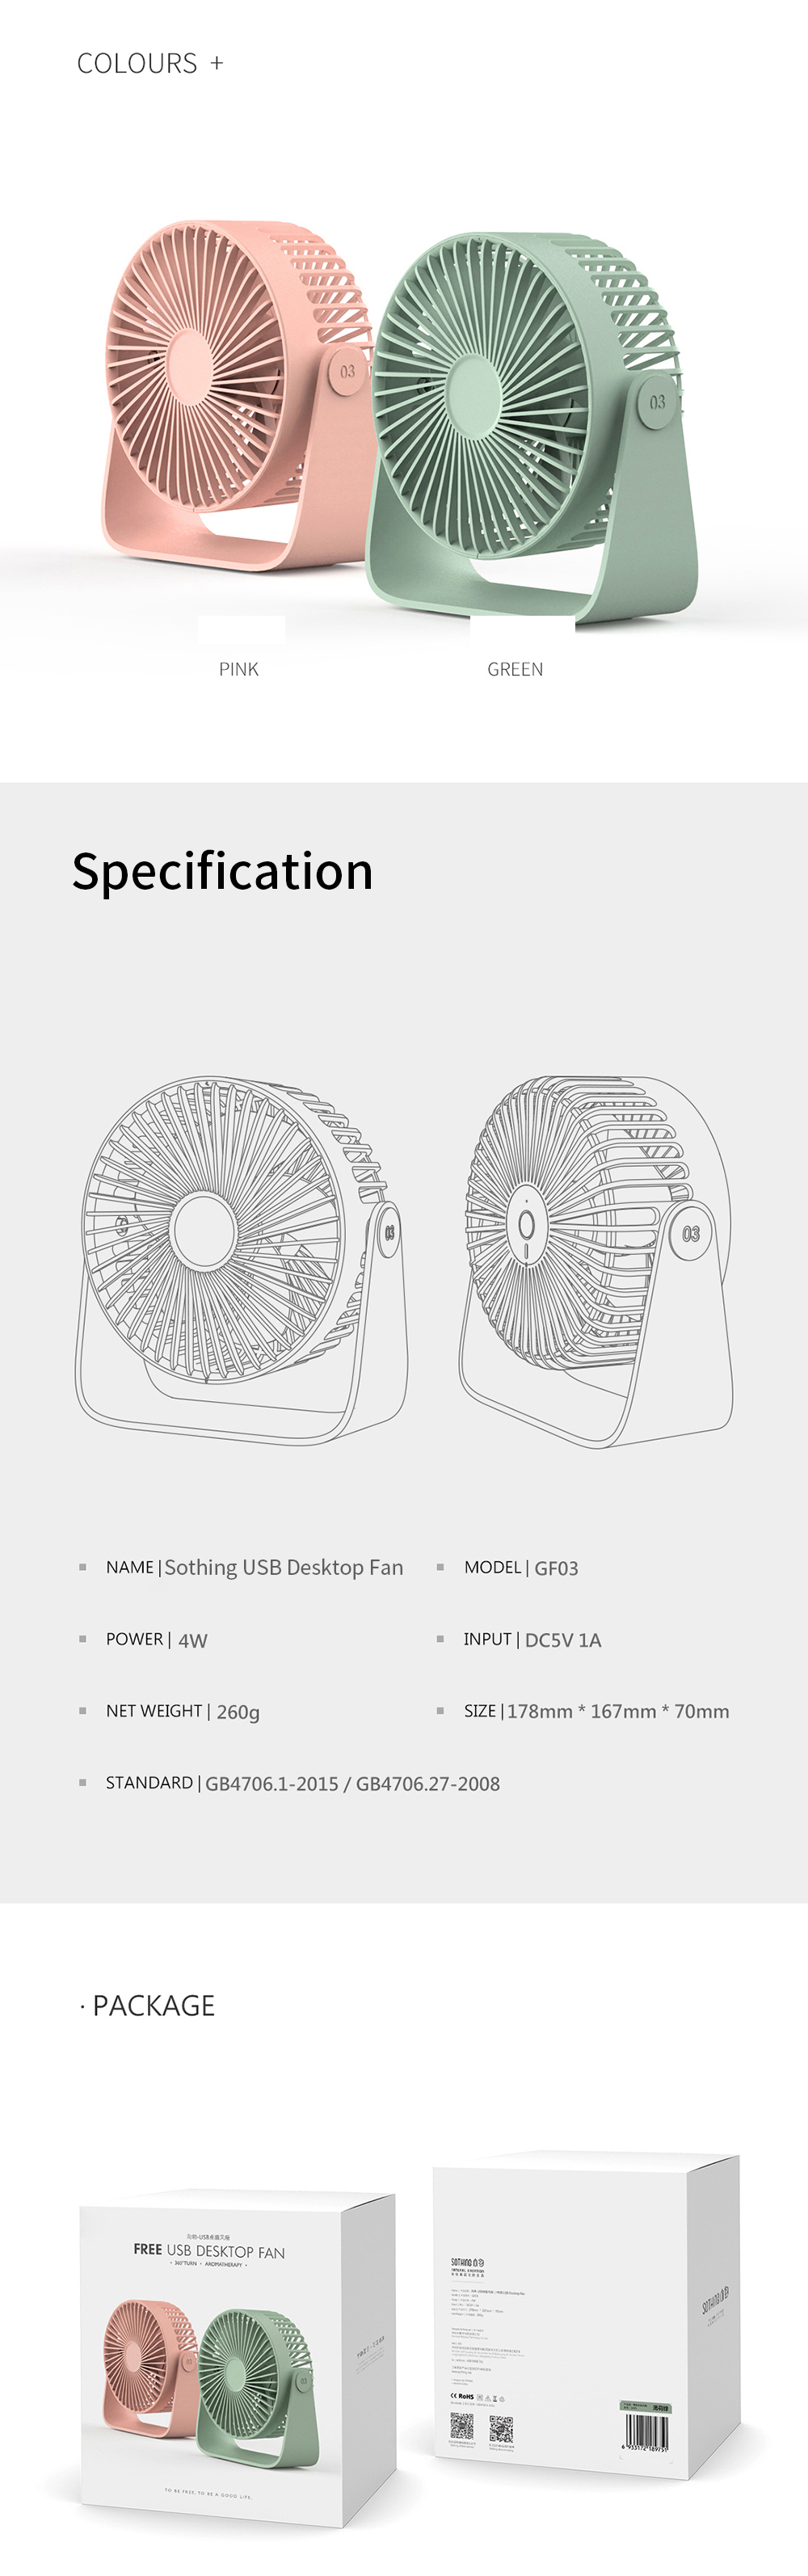 Sothing GF03 FREE USB Desktop Fan Aroma Diffuser 360° Adjustable 30dB Low Noise Aromatherapy Fan from xiaomi youpin